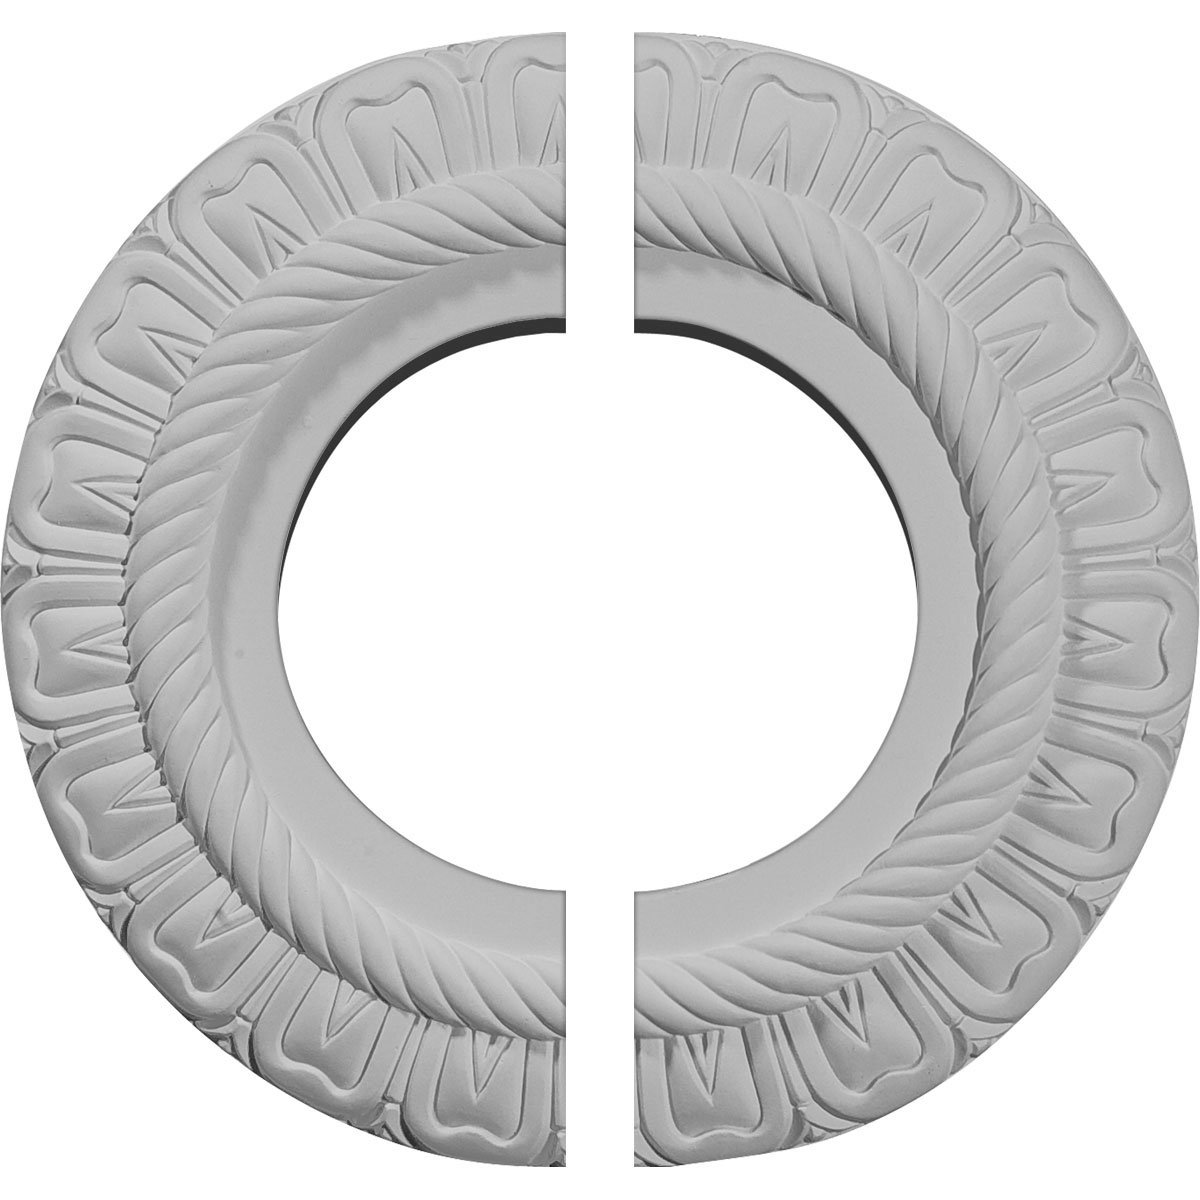 Ekena Millwork CM09CL2 9''OD x 4 1/2''ID x 1/2''P Claremont Ceiling Medallion, Fits Canopies up to 5-5/8'', 2 Piece